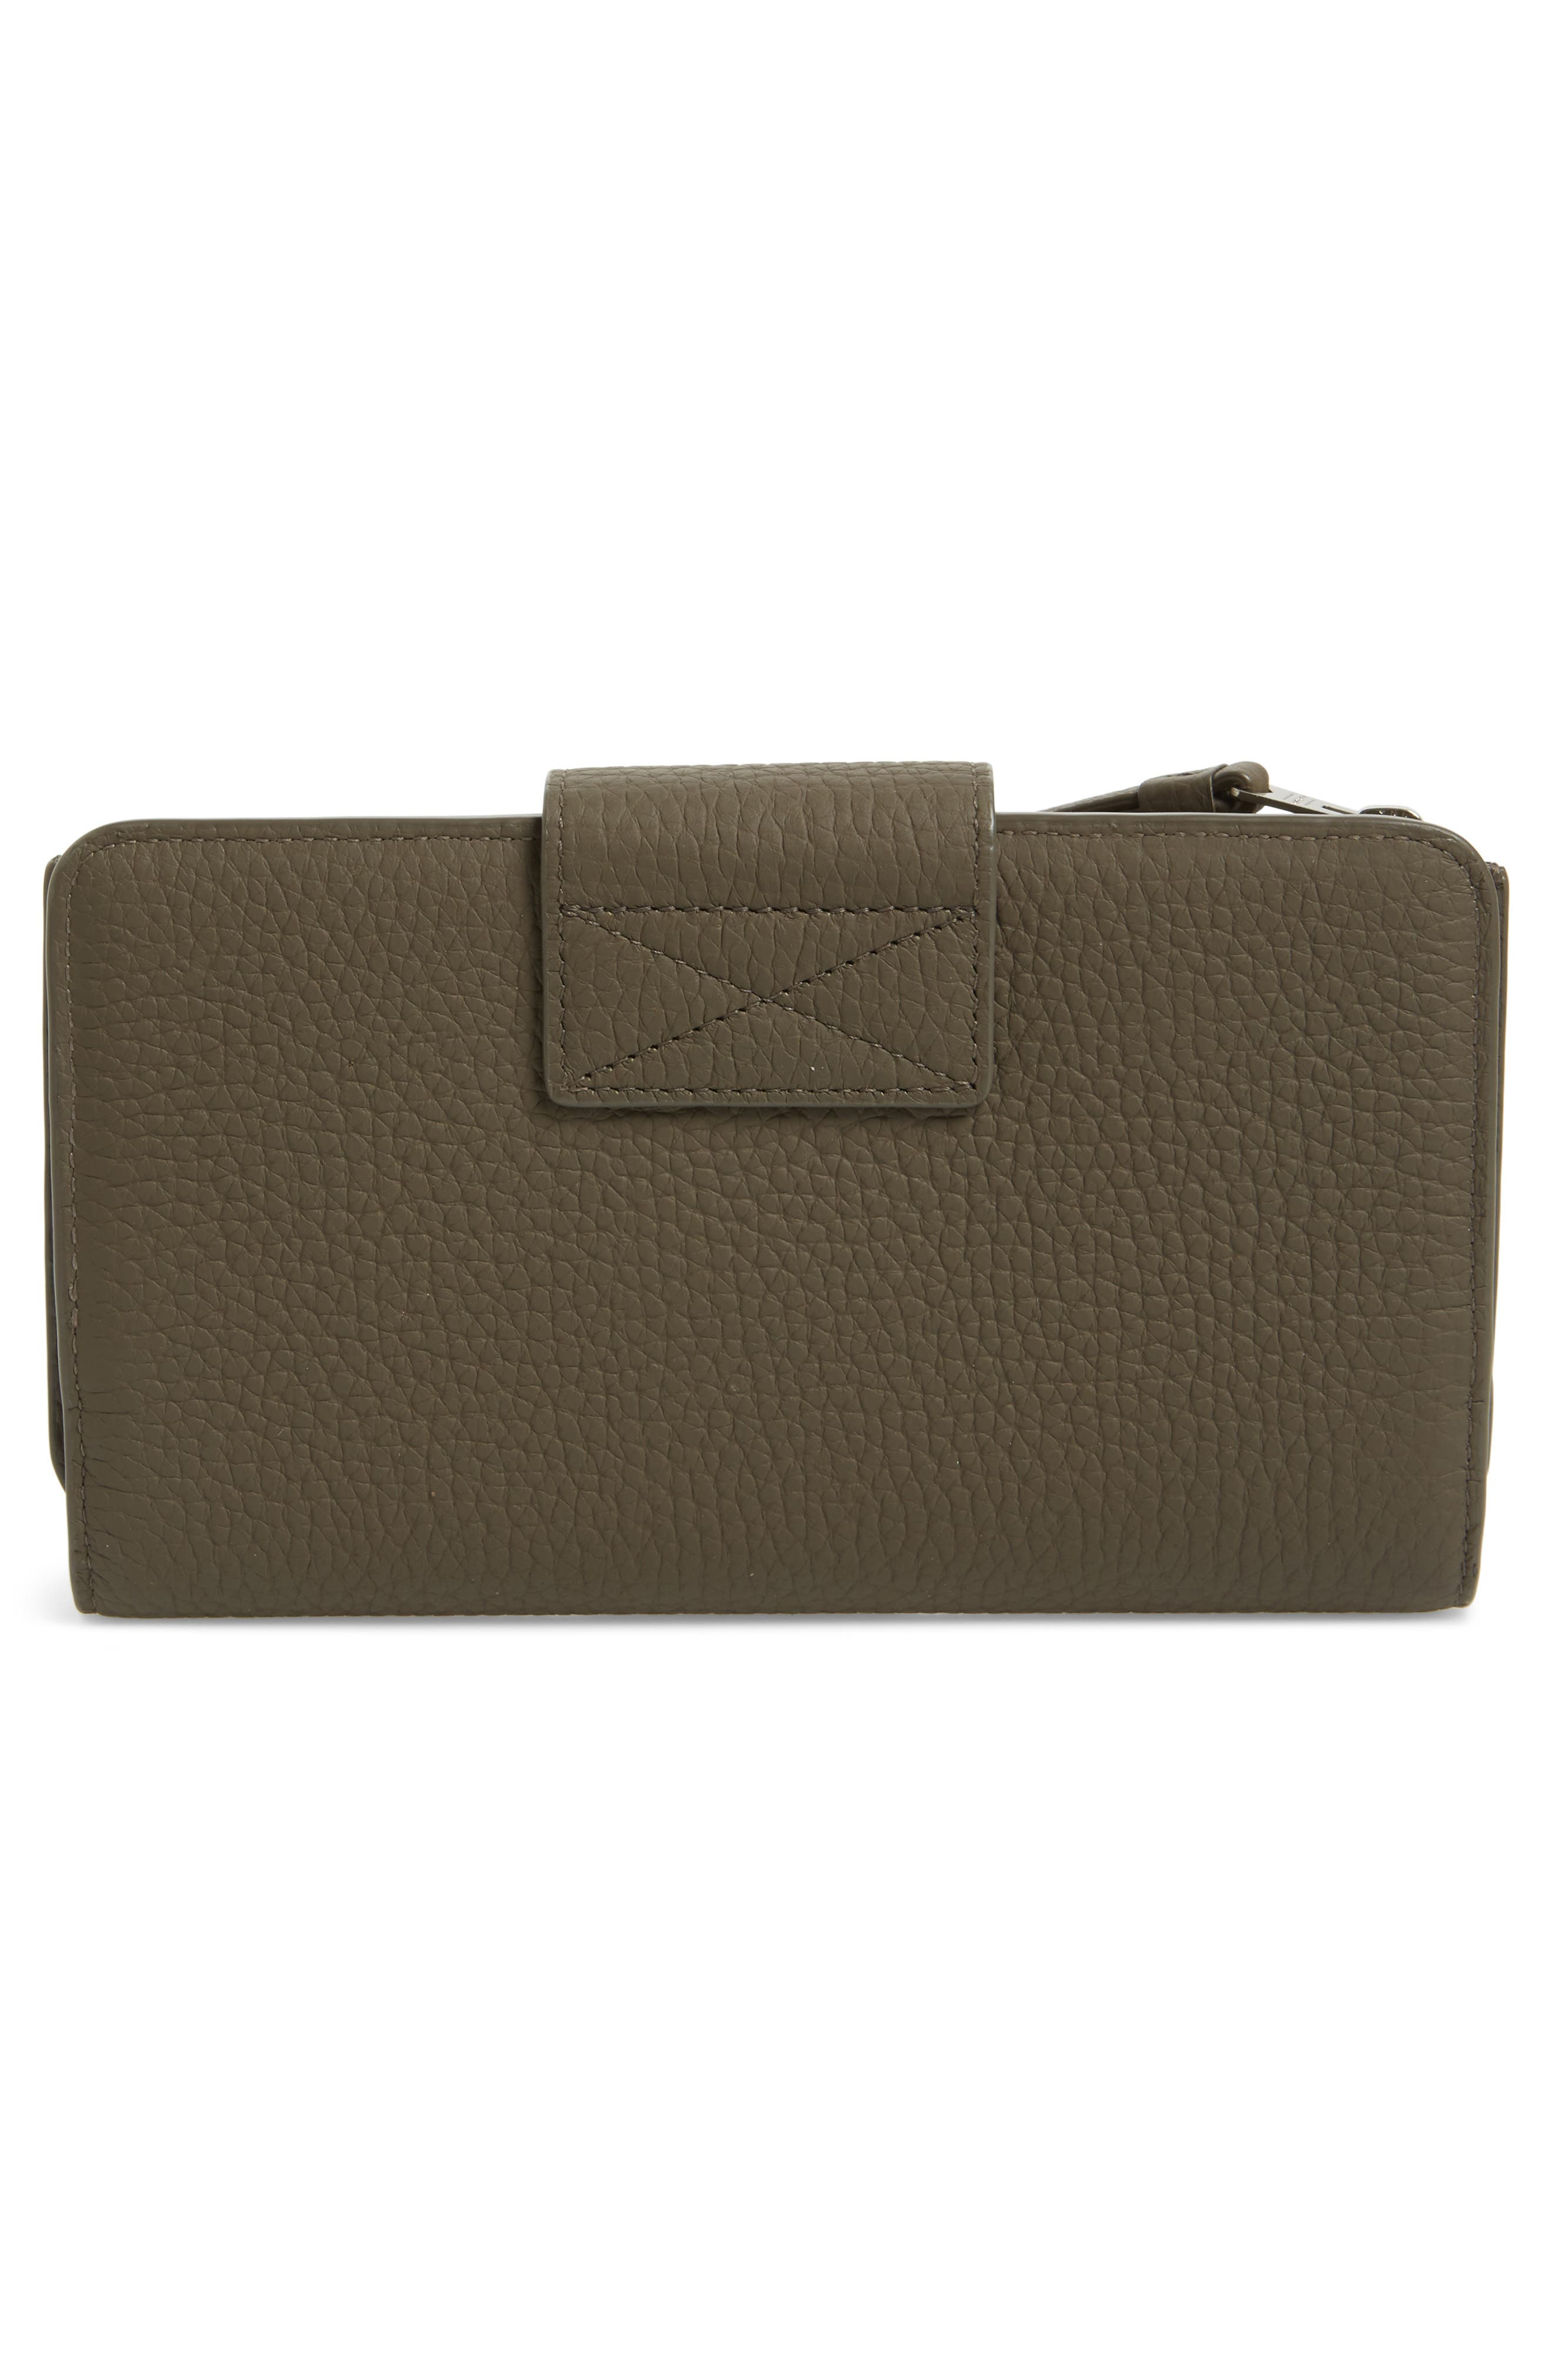 Ray Leather Wallet,                             Alternate thumbnail 3, color,                             024